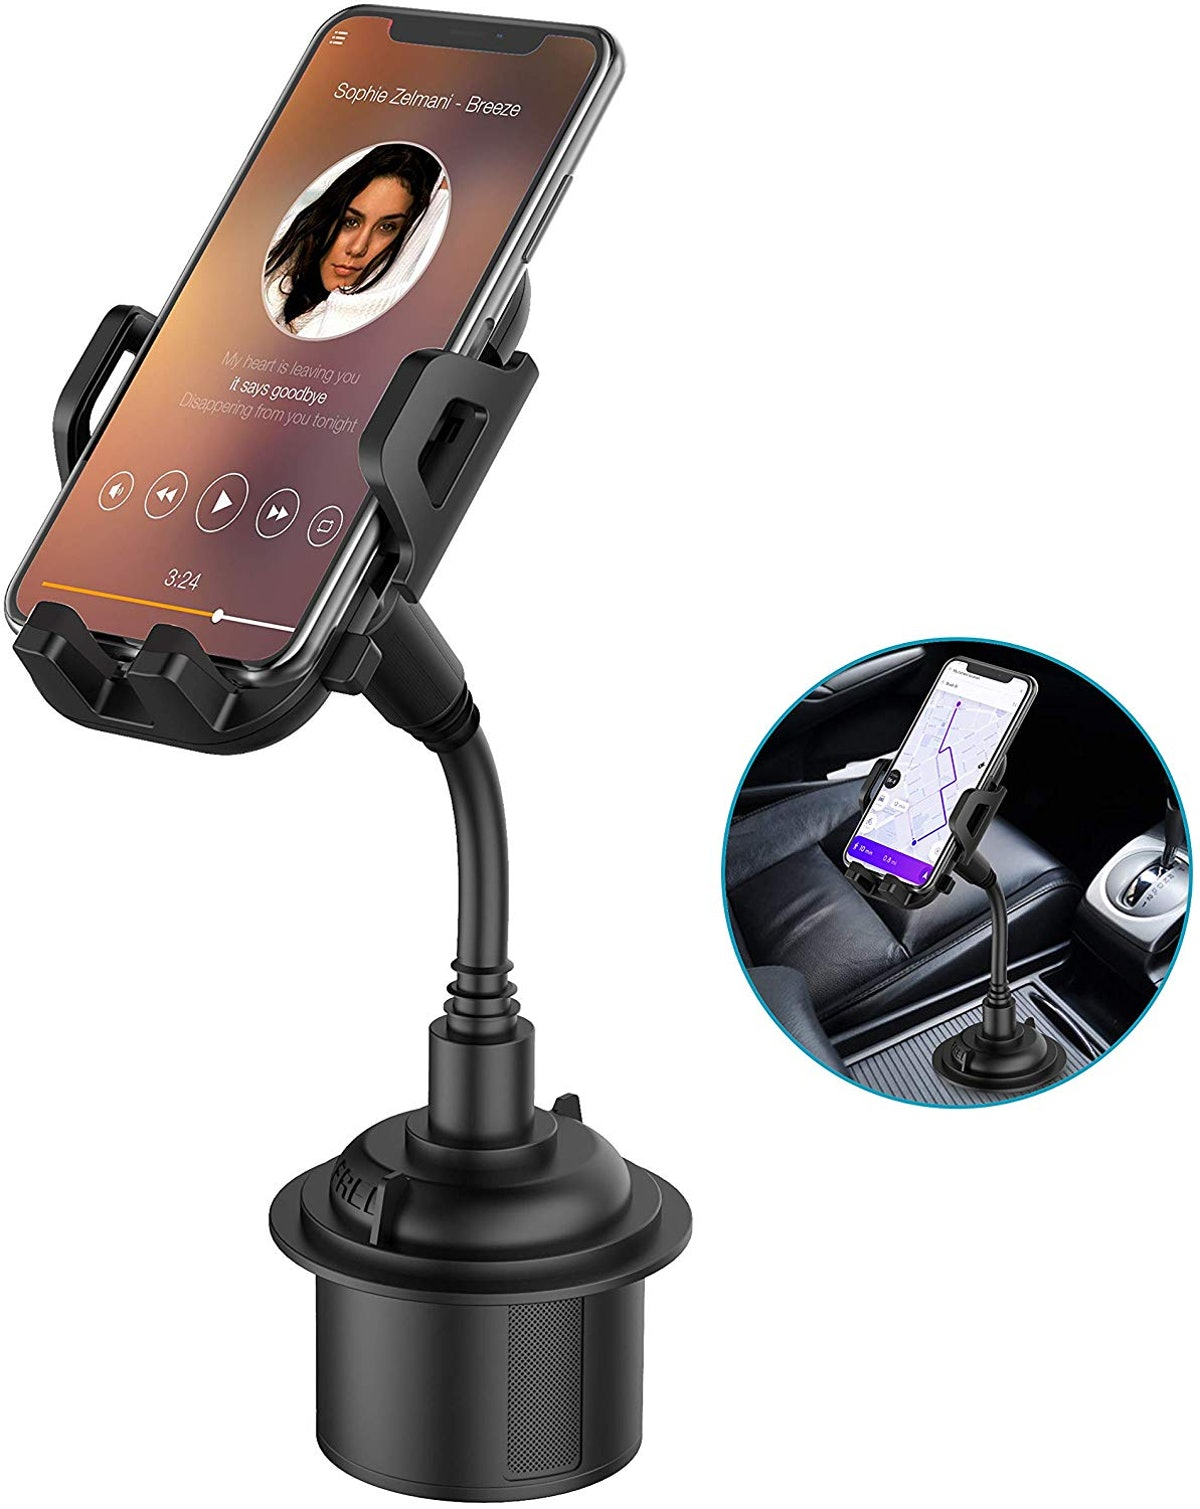 Outsolidep Car Phone Mount